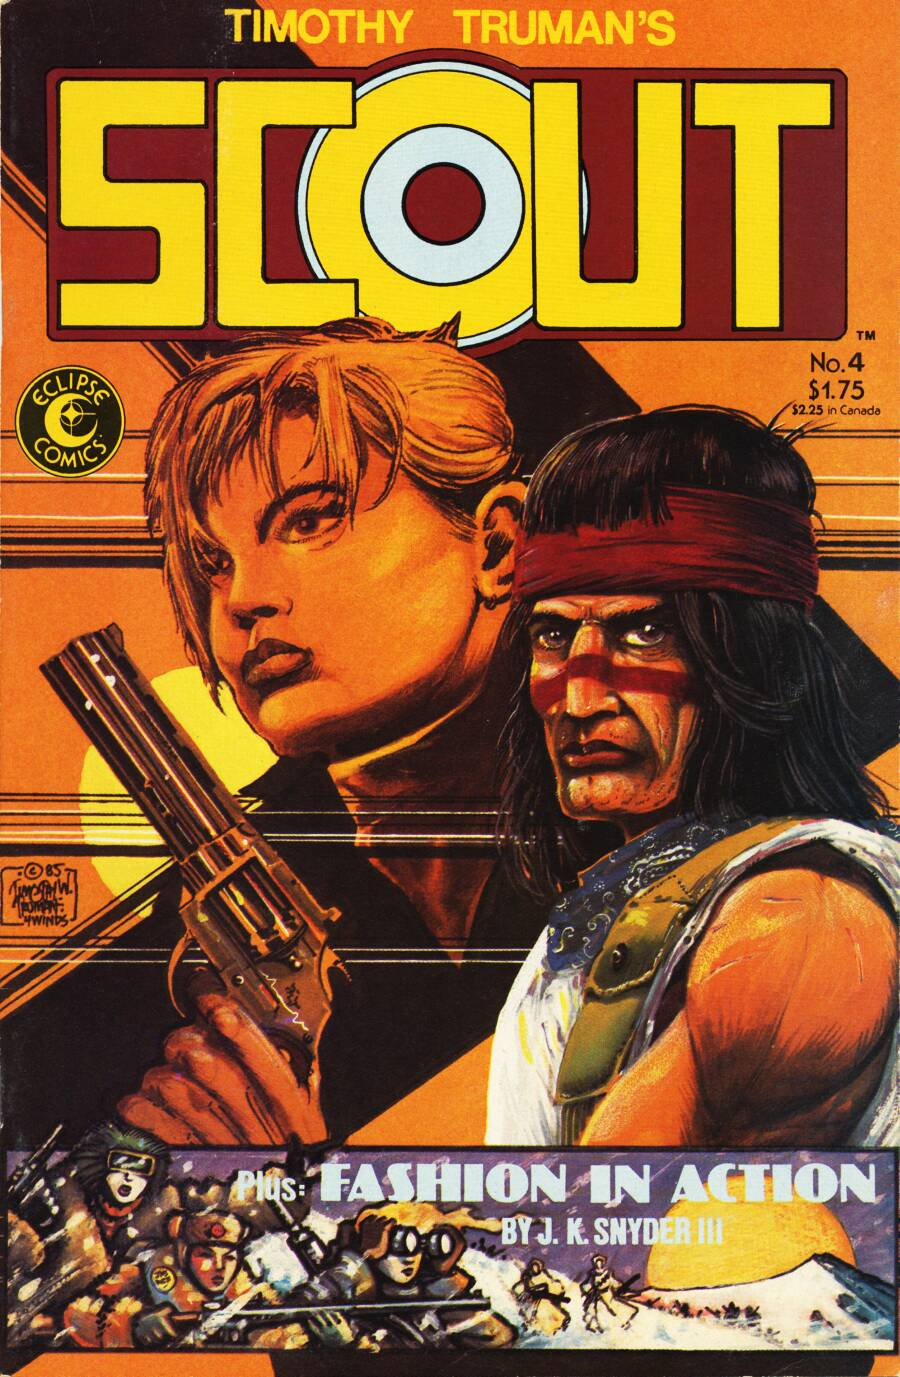 Read online Scout comic -  Issue #4 - 1